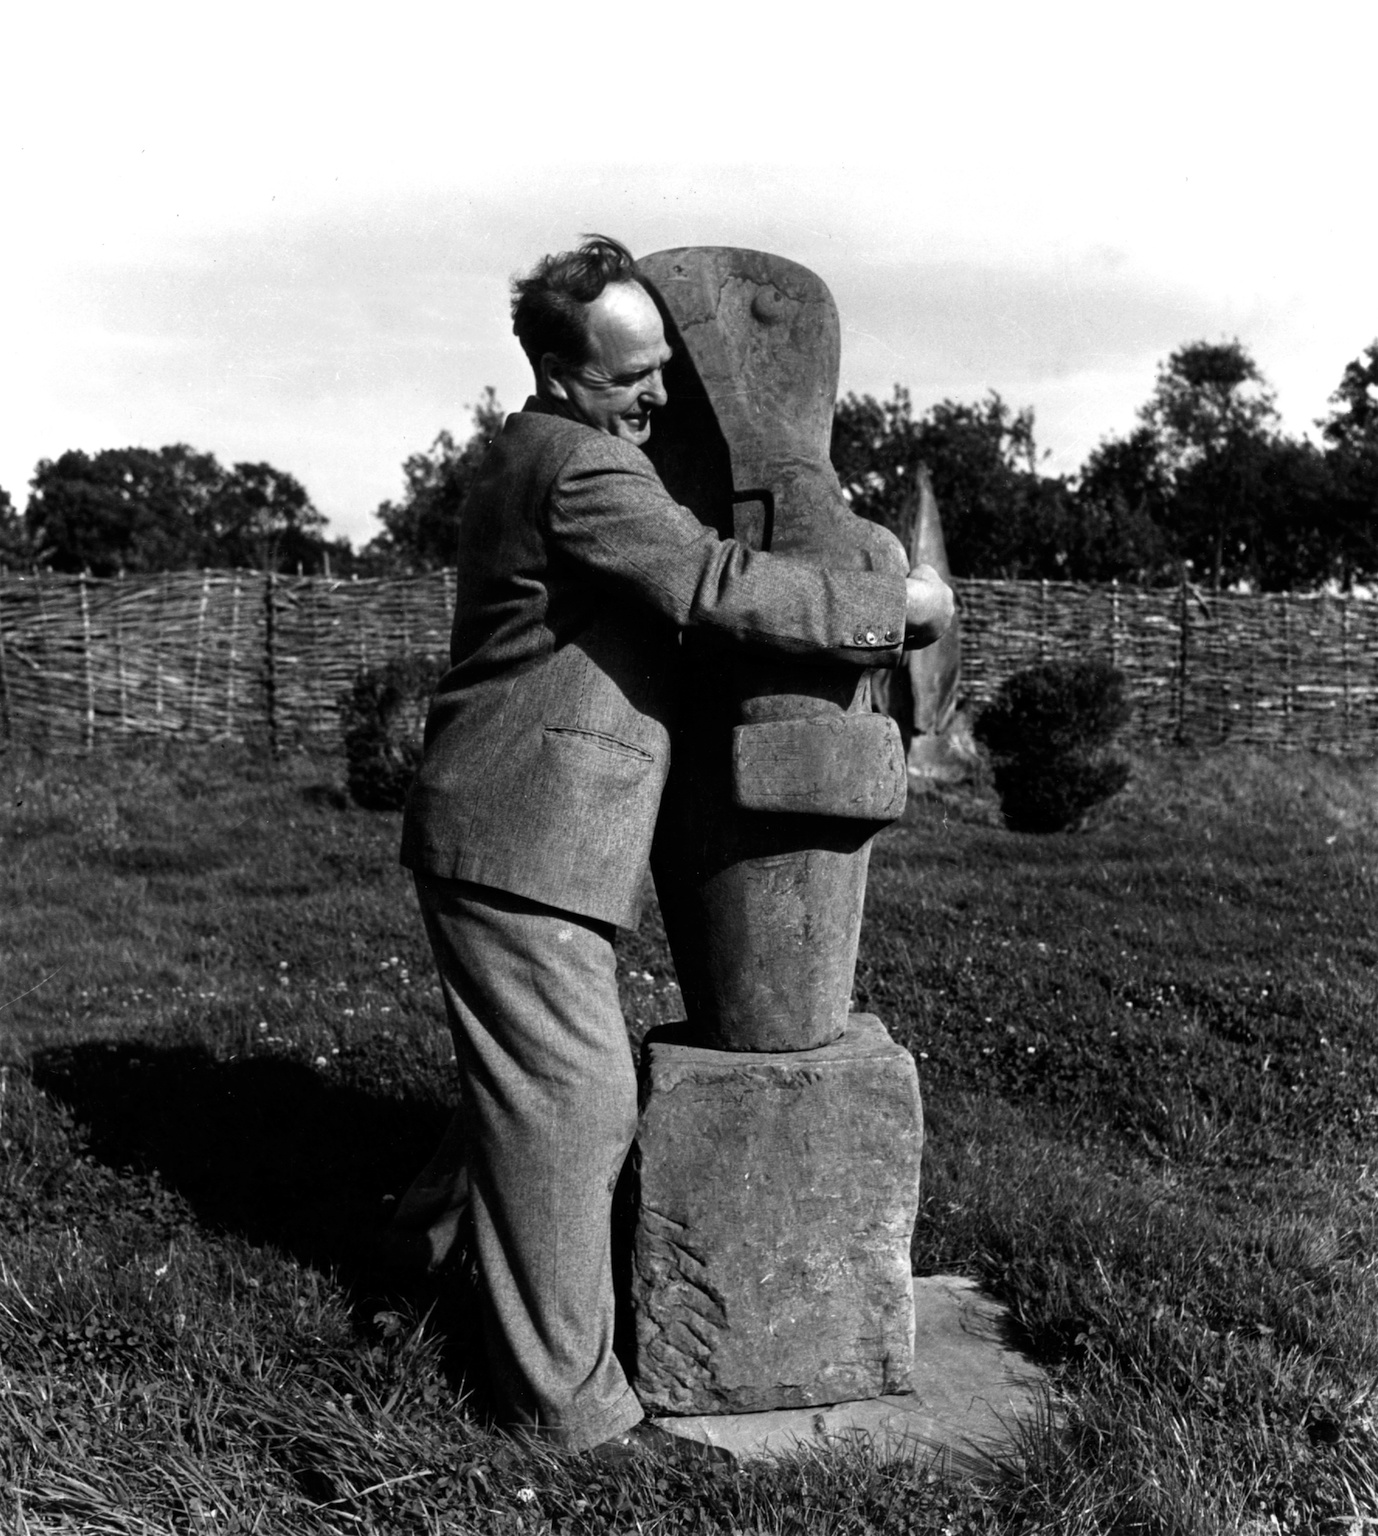 Lee Miller, Henry Moore with his sculpture Mother and Child, Farleys Garden, East Sussex, 1953